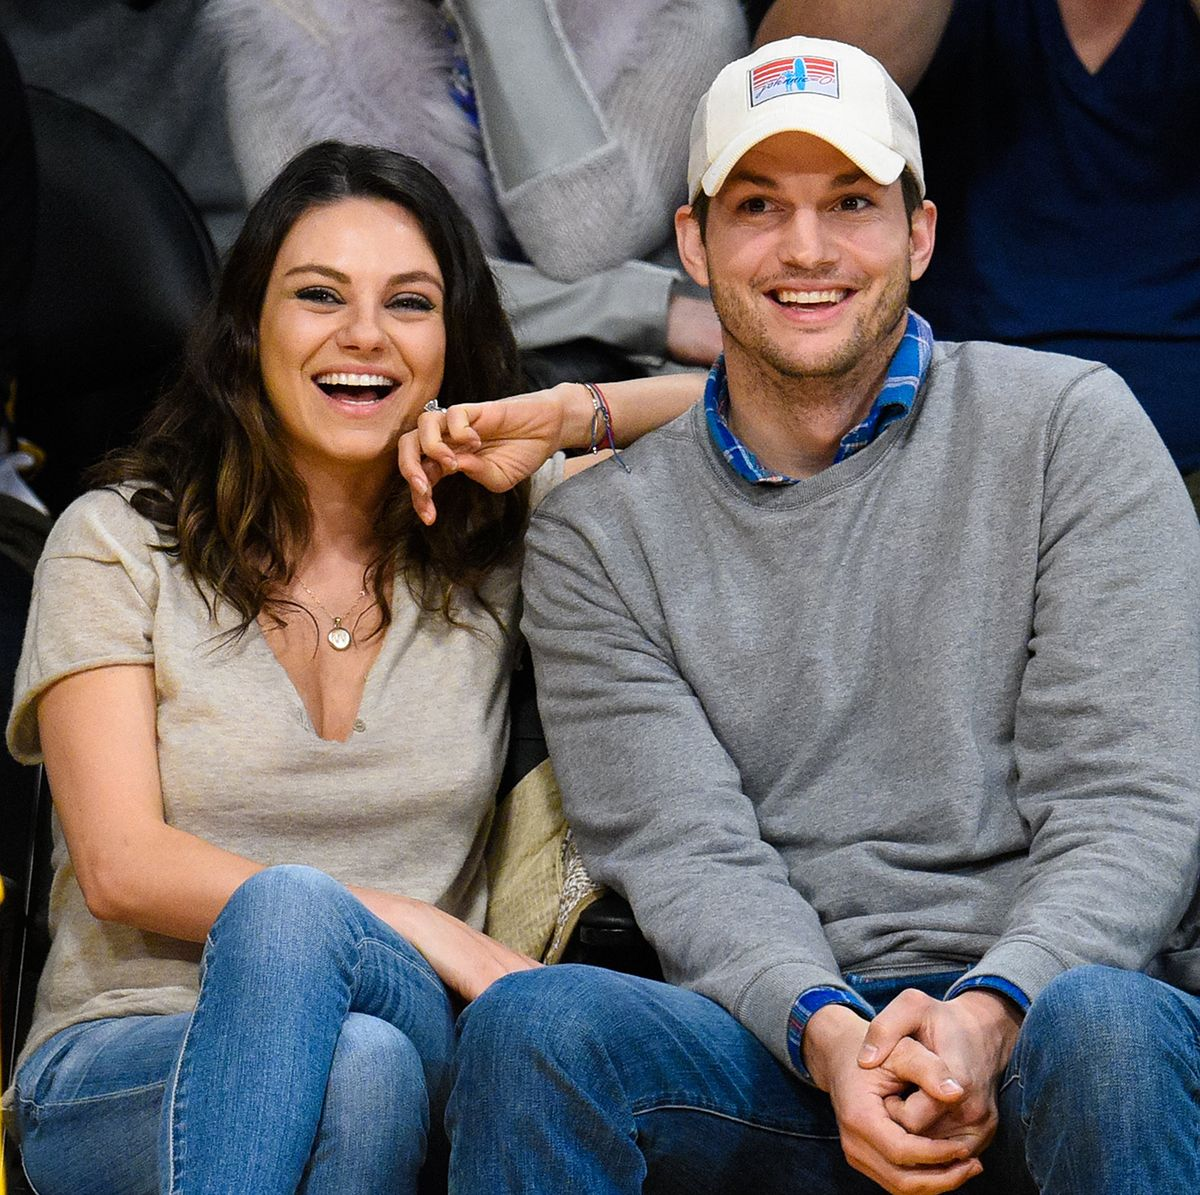 Things You Might Not Know About Ashton Kutcher And Mila Kunis' Relationship - Fame10